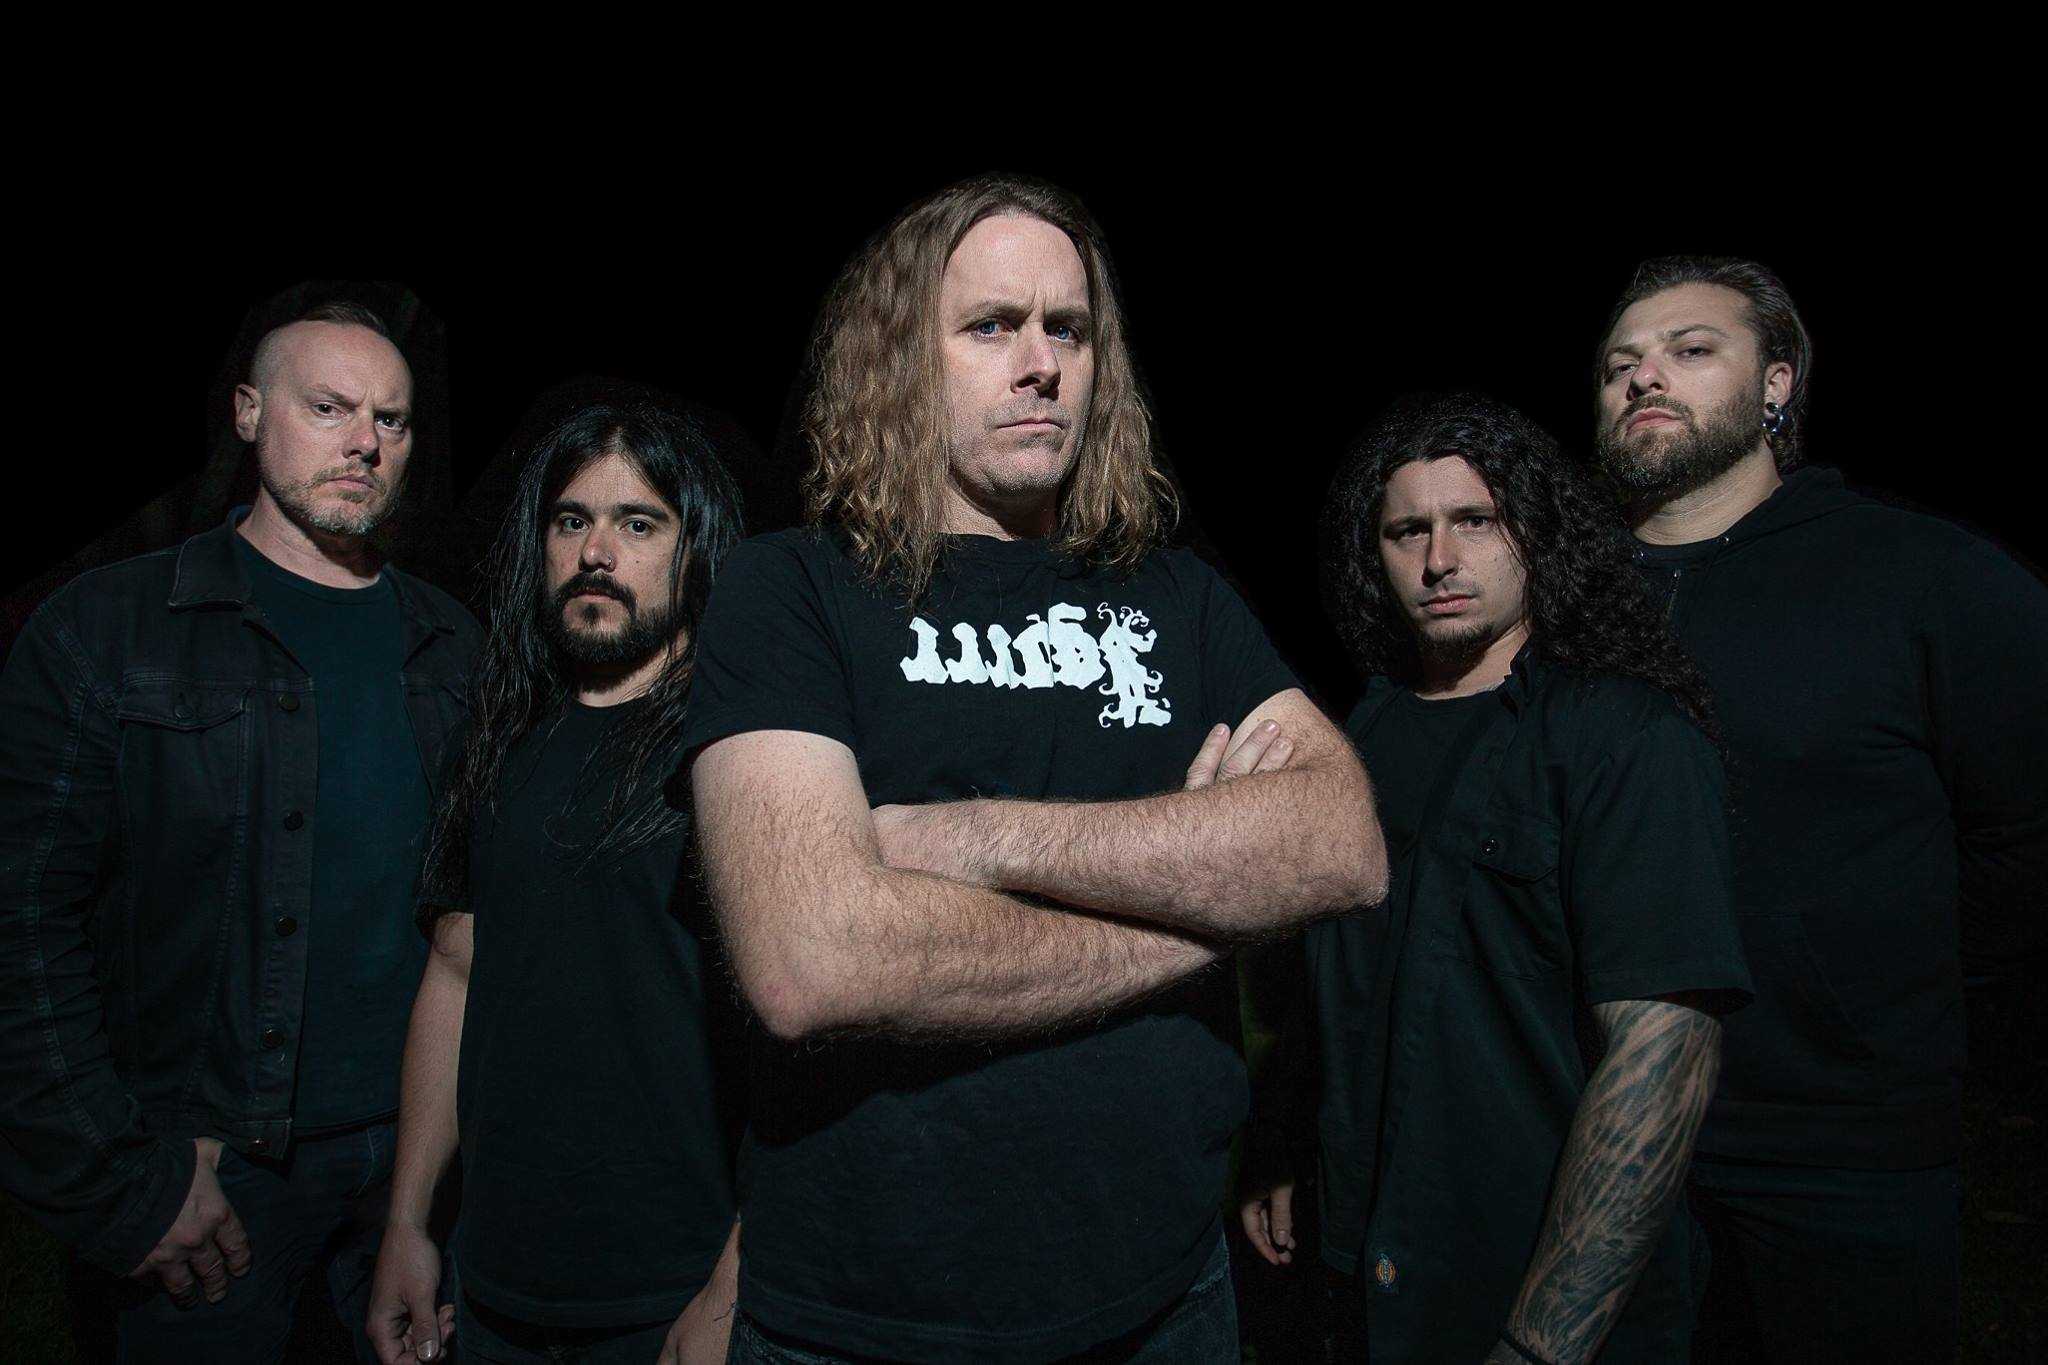 CATTLE DECAPITATION - ? (fin 2019 ou début 2020) Cattle-Decapitation-new-lineup-2018-ghostcultmag-